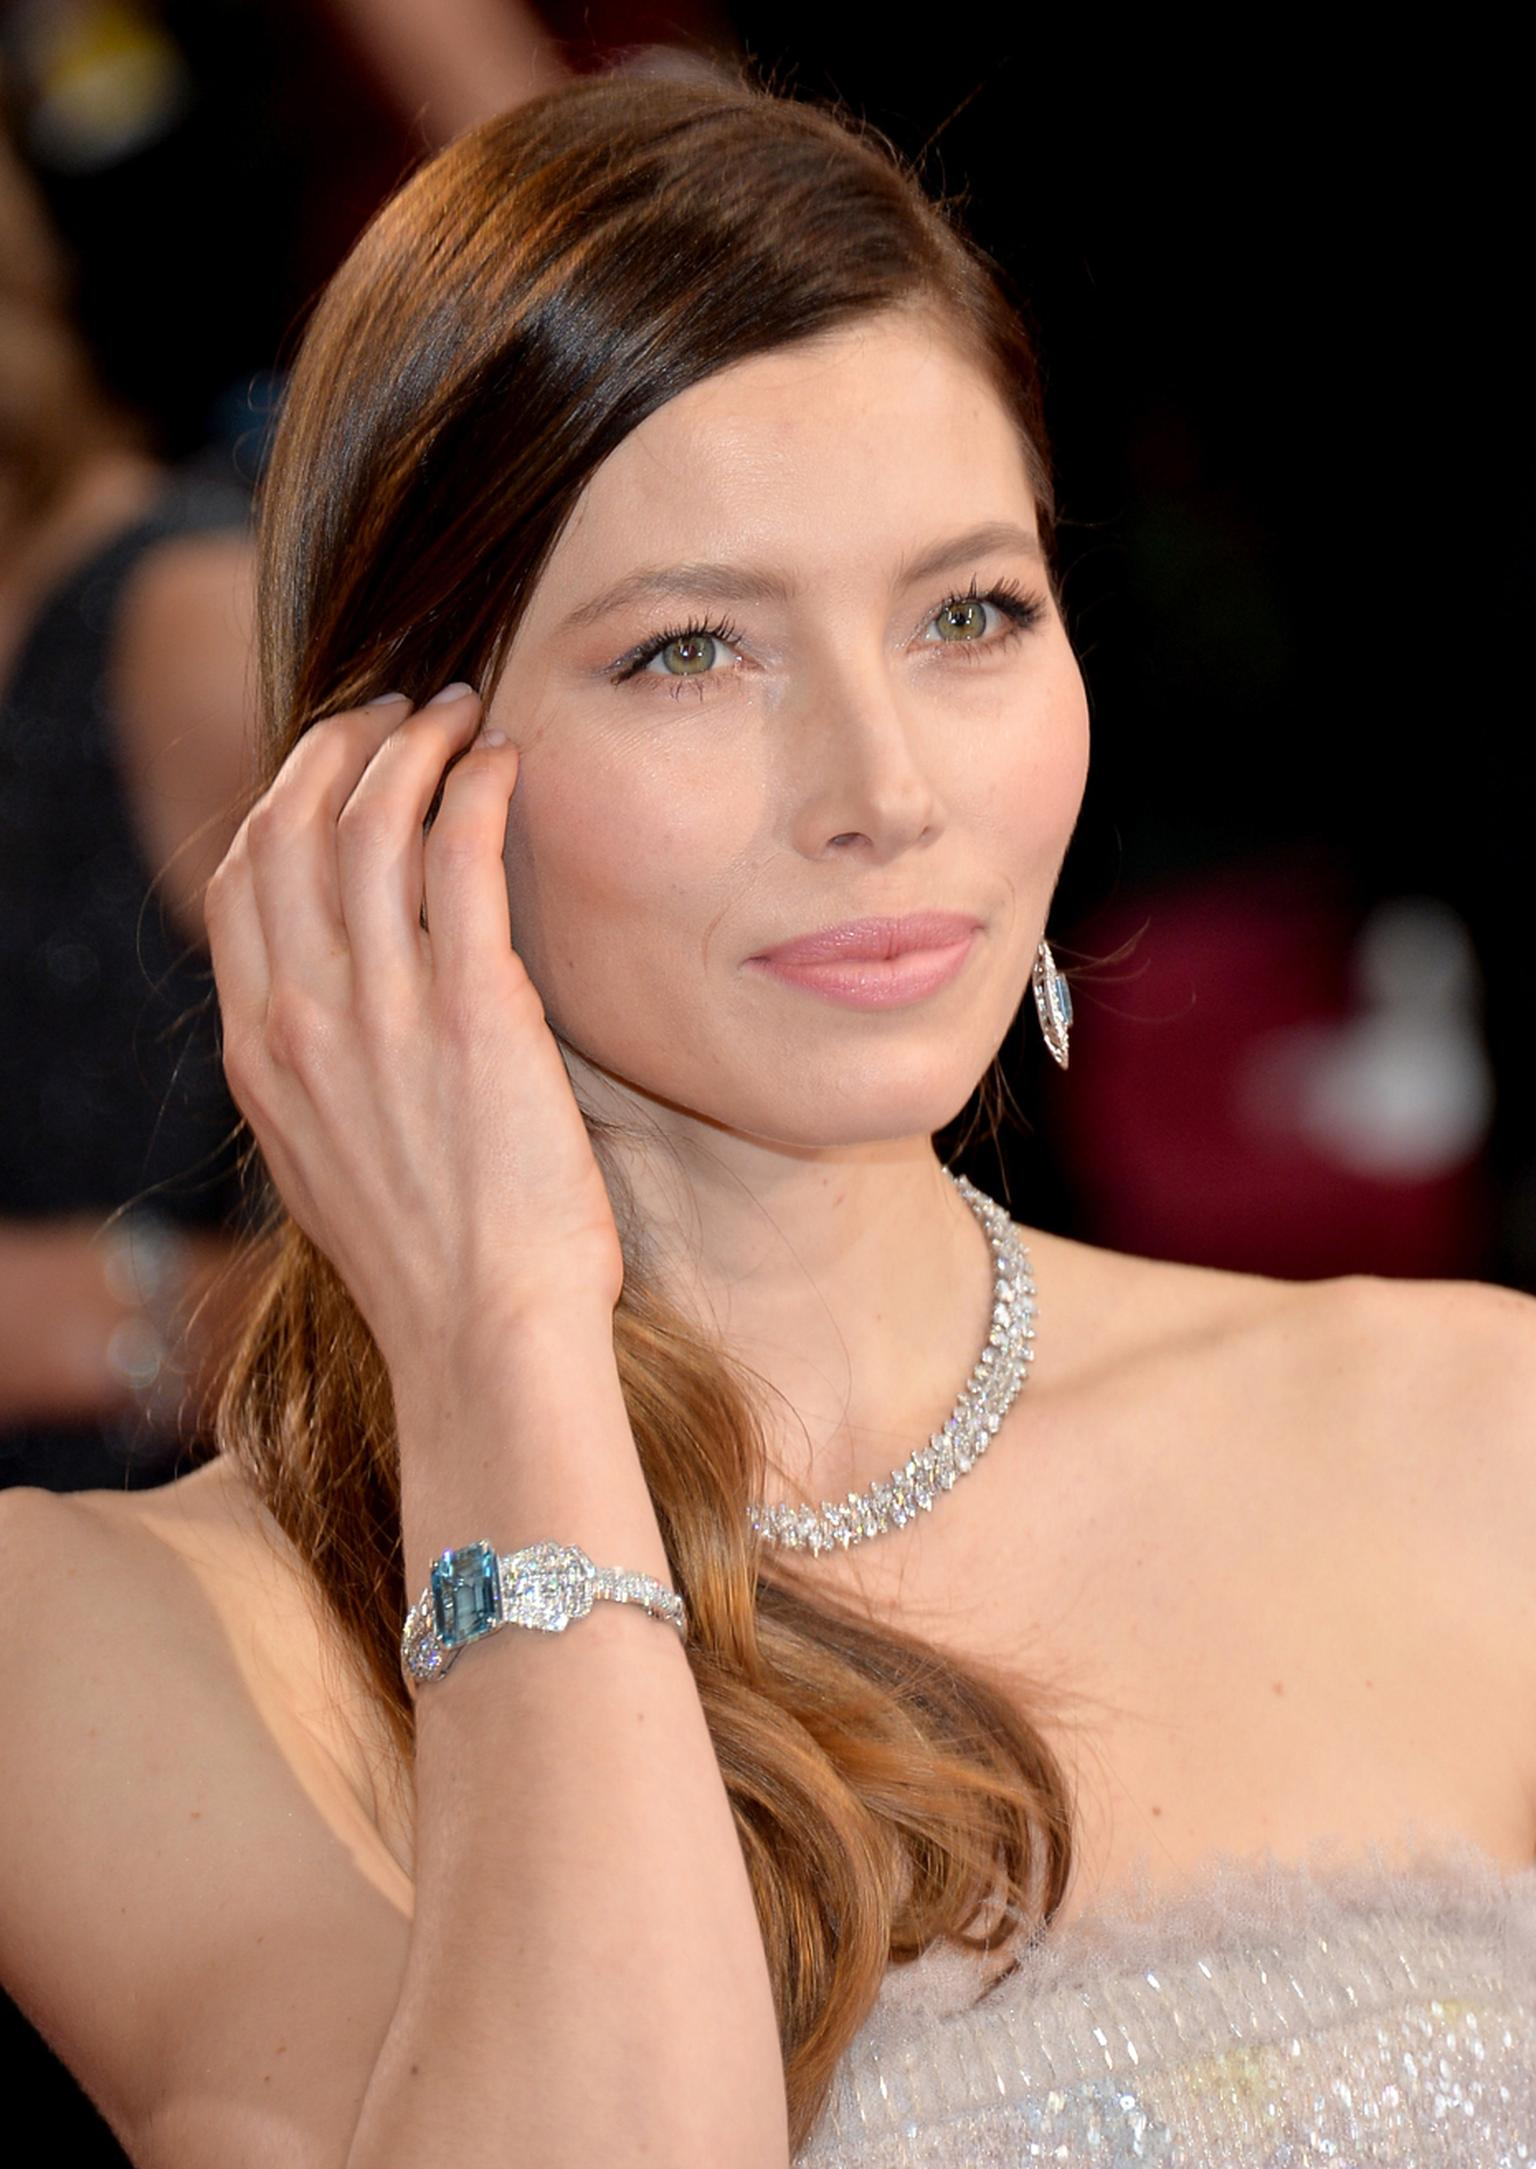 Jessica Biel pictured at the Oscars 2014 in platinum, diamond and aquamarine jewellery by Tiffany & Co